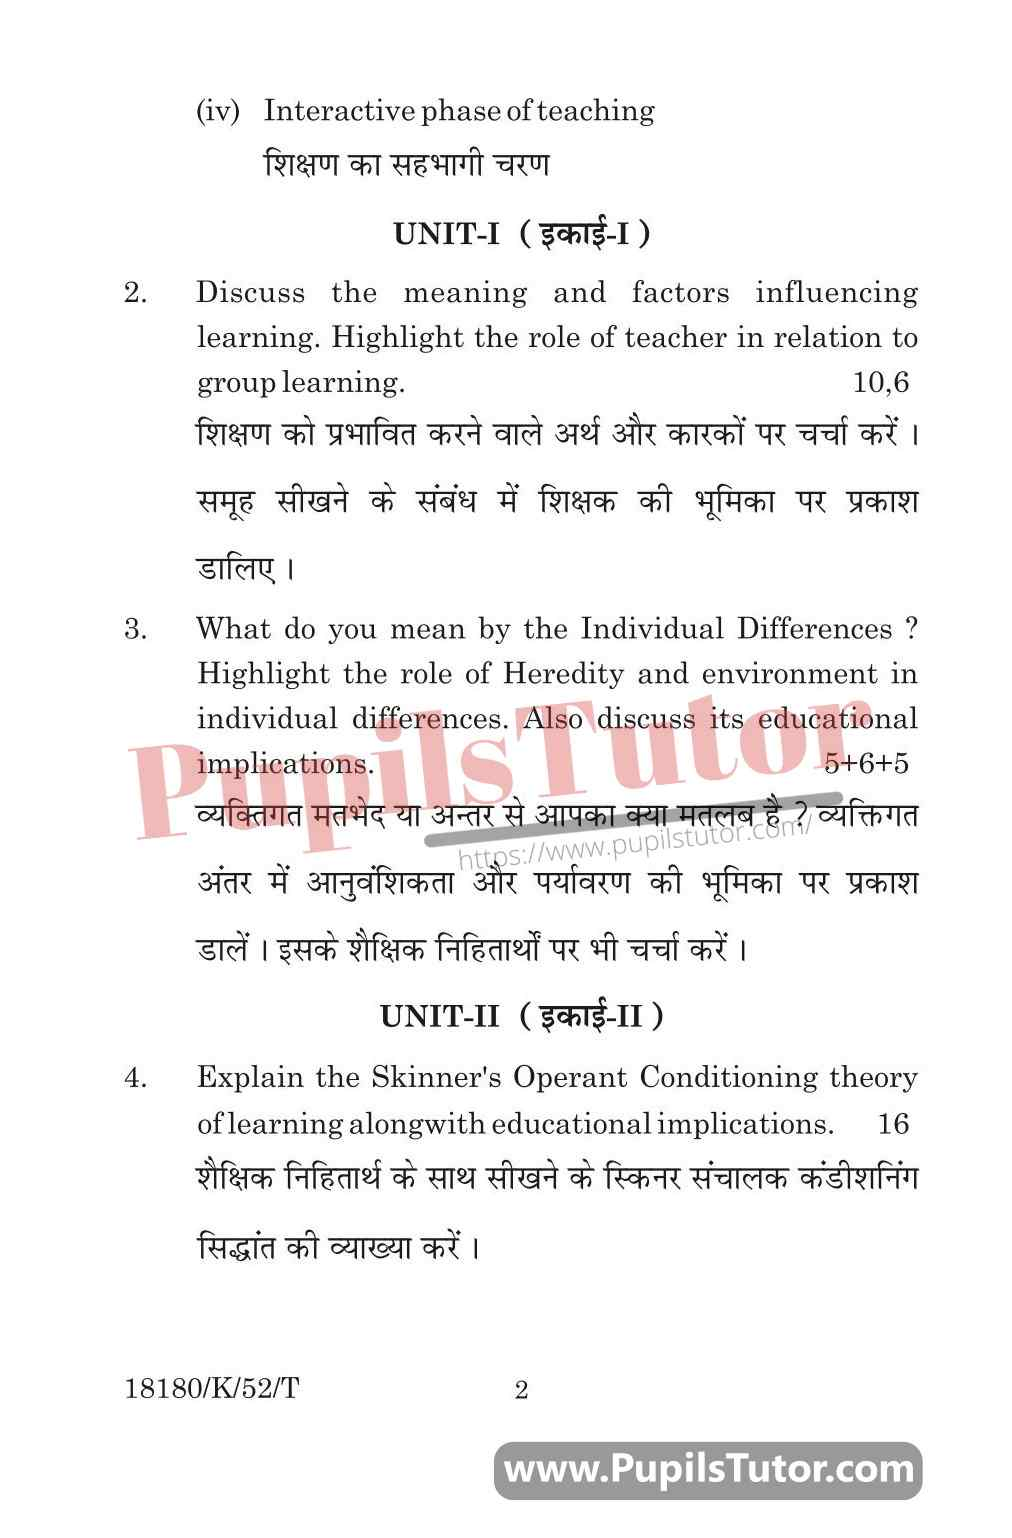 KUK (Kurukshetra University, Haryana) Learning And Teaching Question Paper 2020 For B.Ed 1st And 2nd Year And All The 4 Semesters In English And Hindi Medium Free Download PDF - Page 2 - www.pupilstutor.com